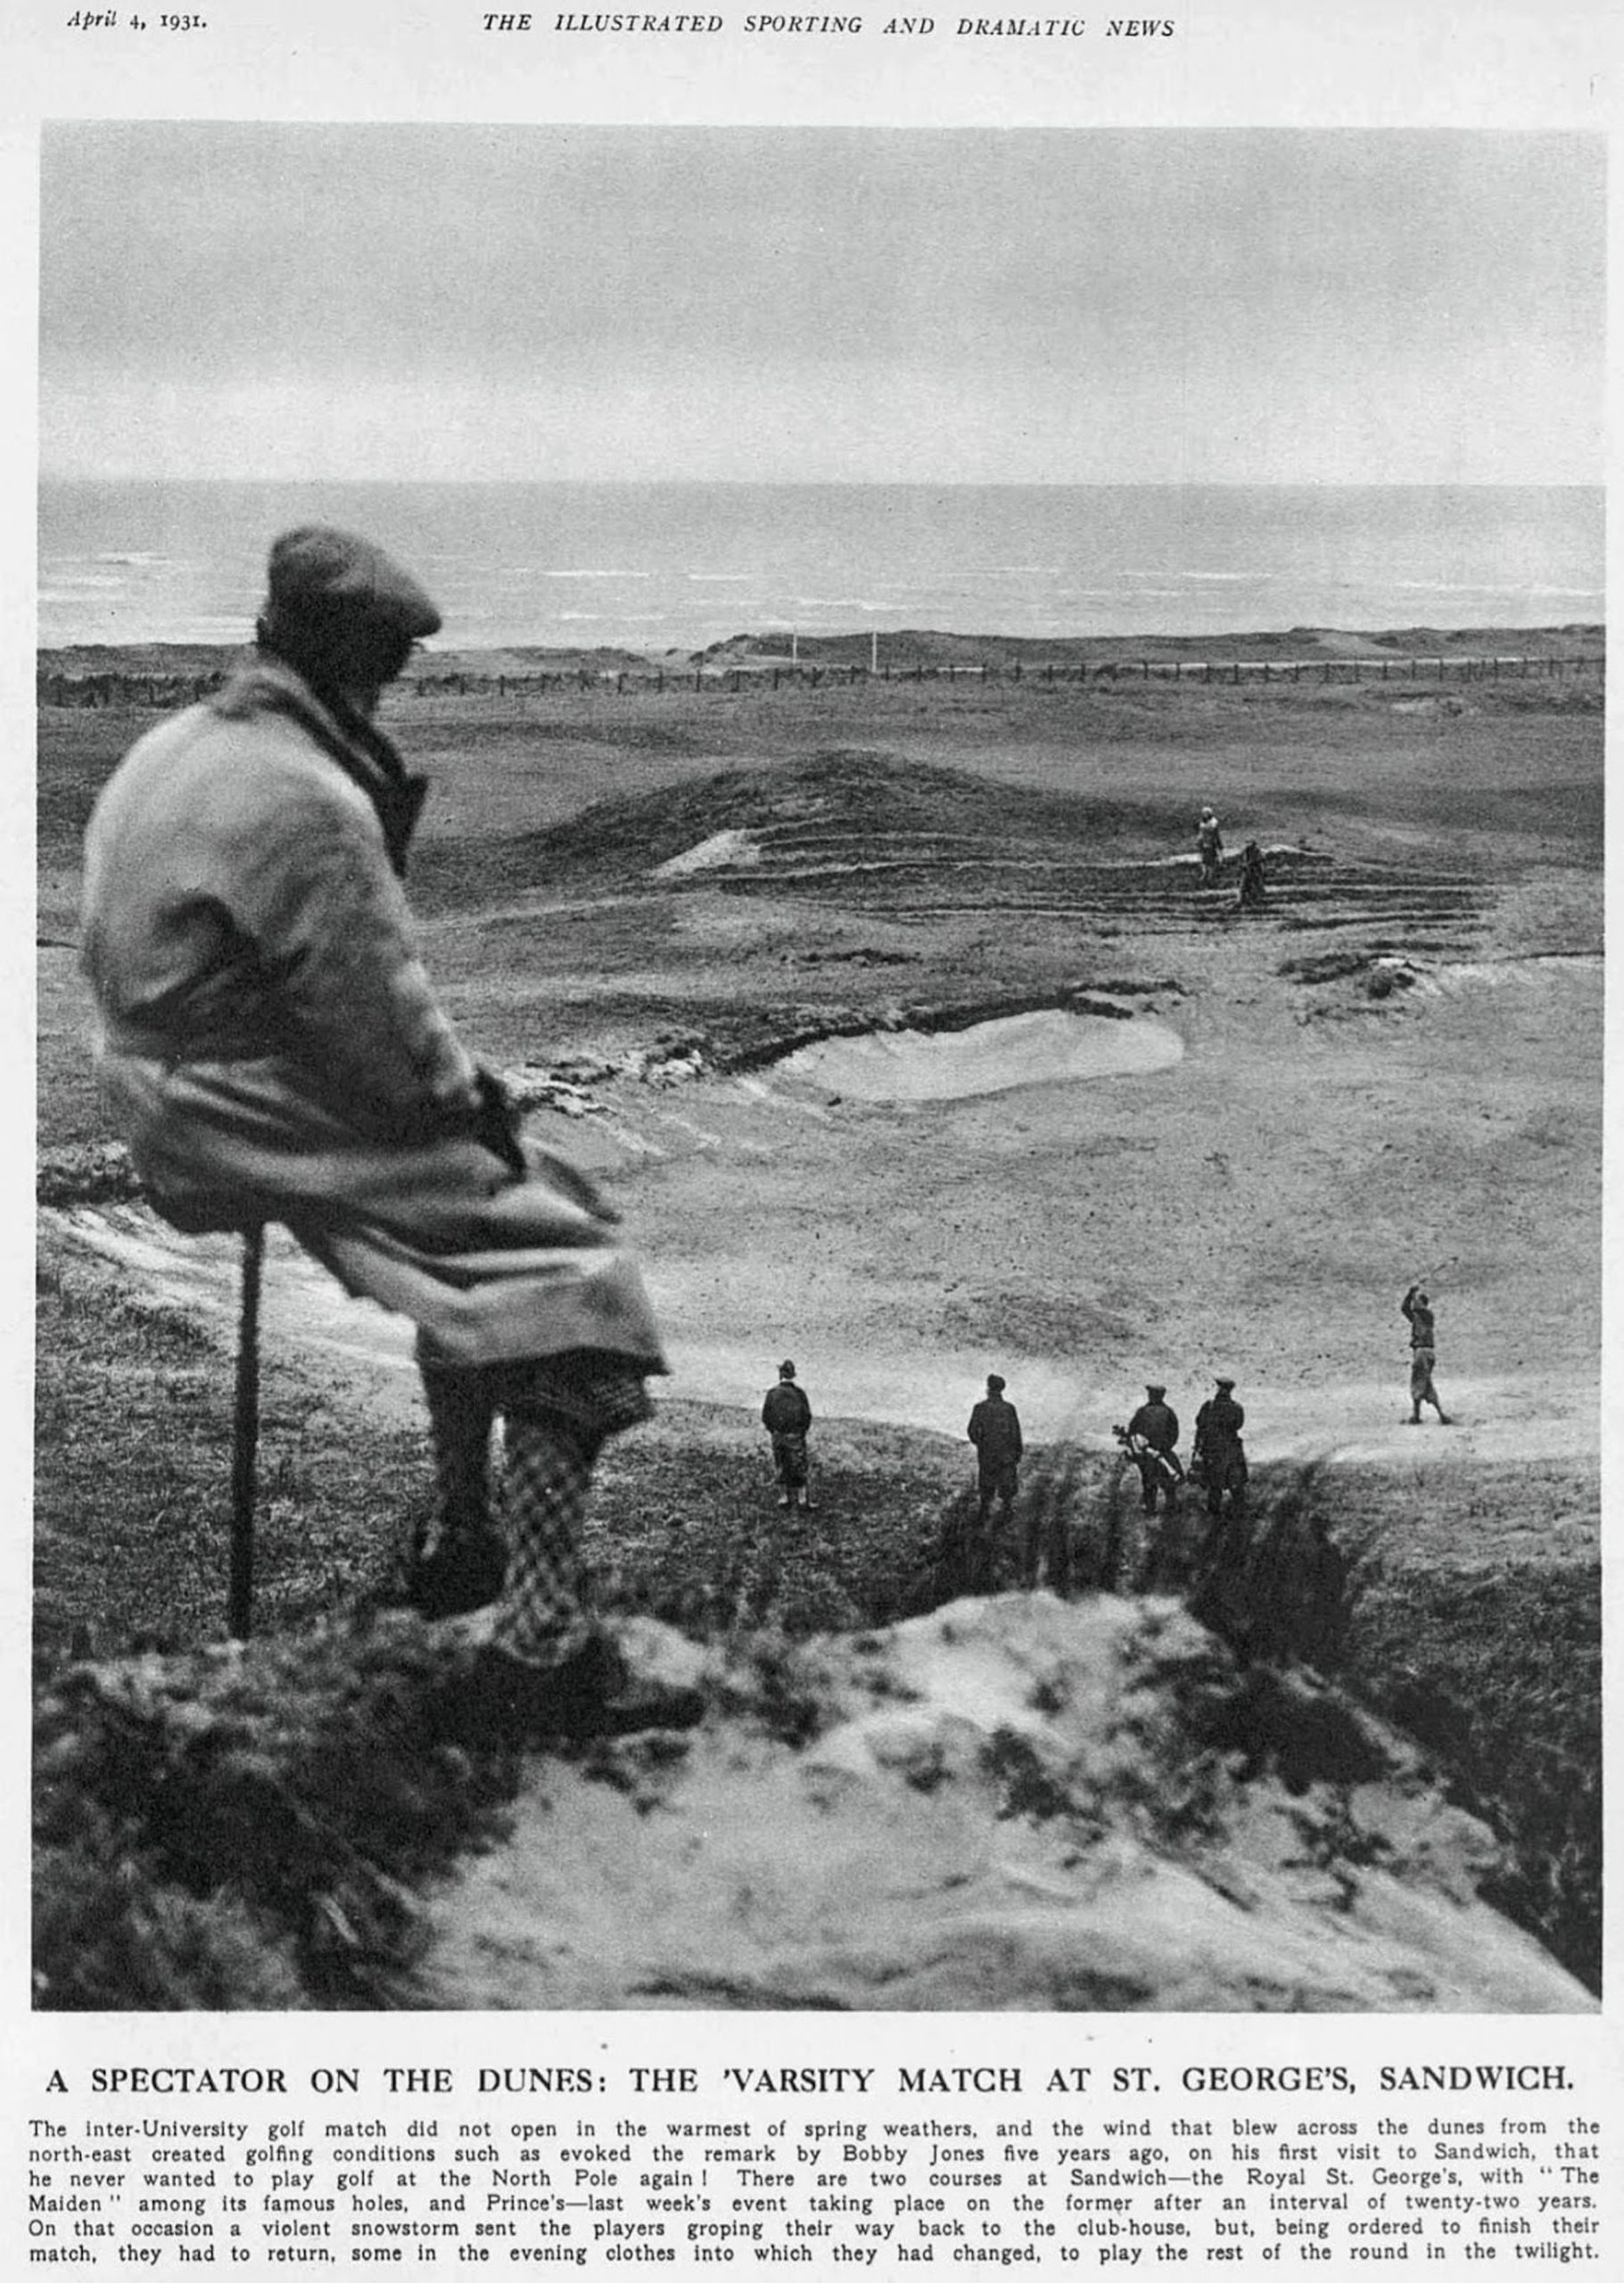 A spectator sits atop the Maiden dune observing the fifth green during an Oxford vs. Cambridge varsity match in 1931.